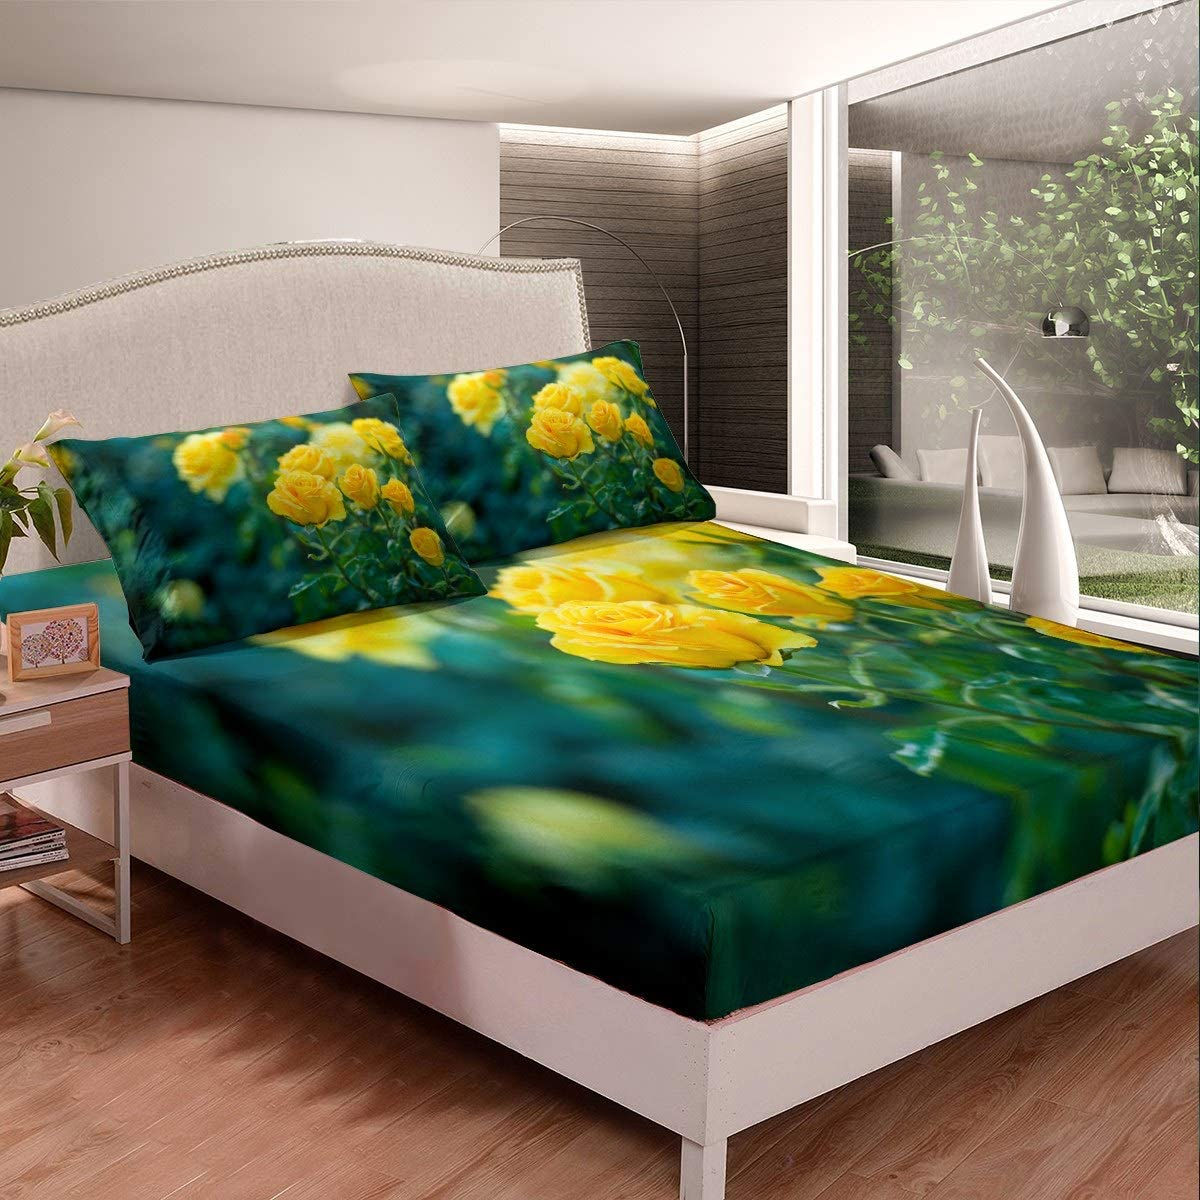 Fitted Sheet Yellow Rose Popular shop is the lowest price challenge Plant Watercolor Sheets Bed Pai Vibrant Sale Special Price